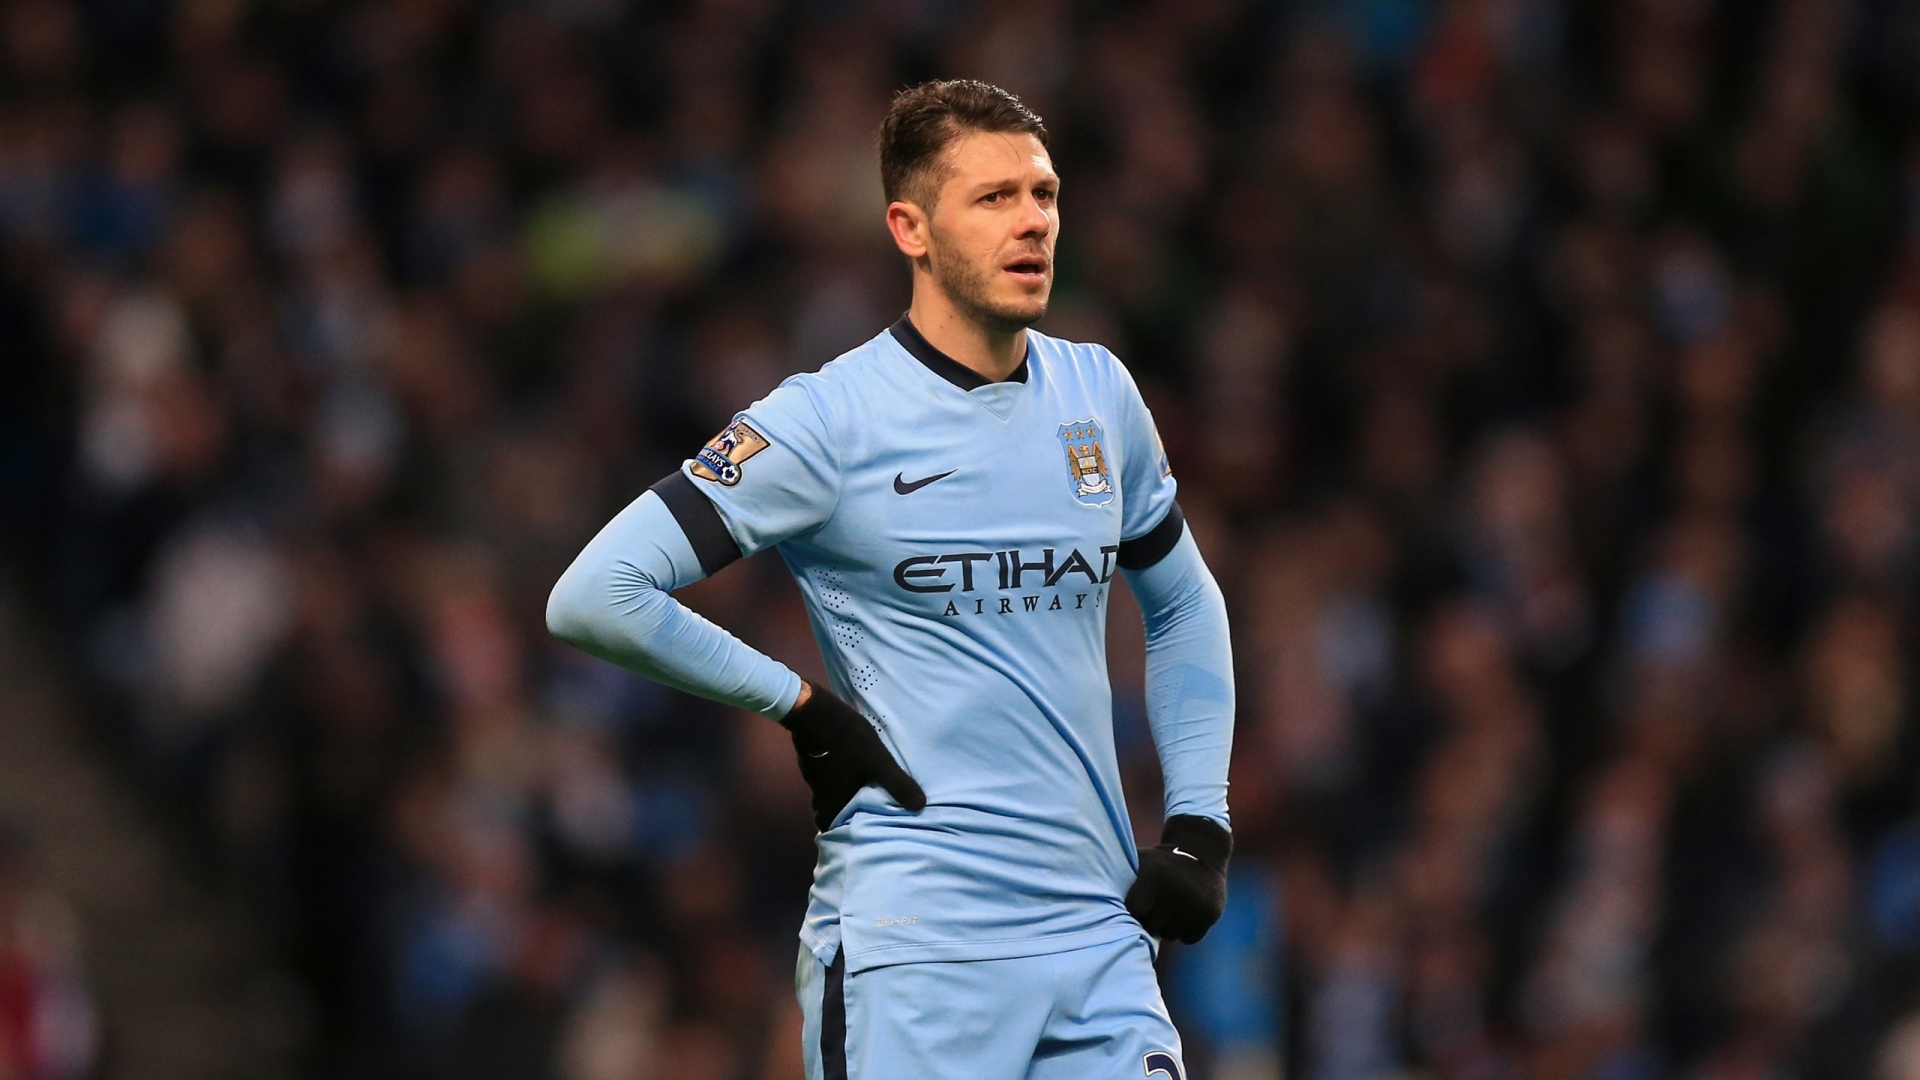 Martin Demichelis Football Player for 1920 x 1080 HDTV 1080p resolution